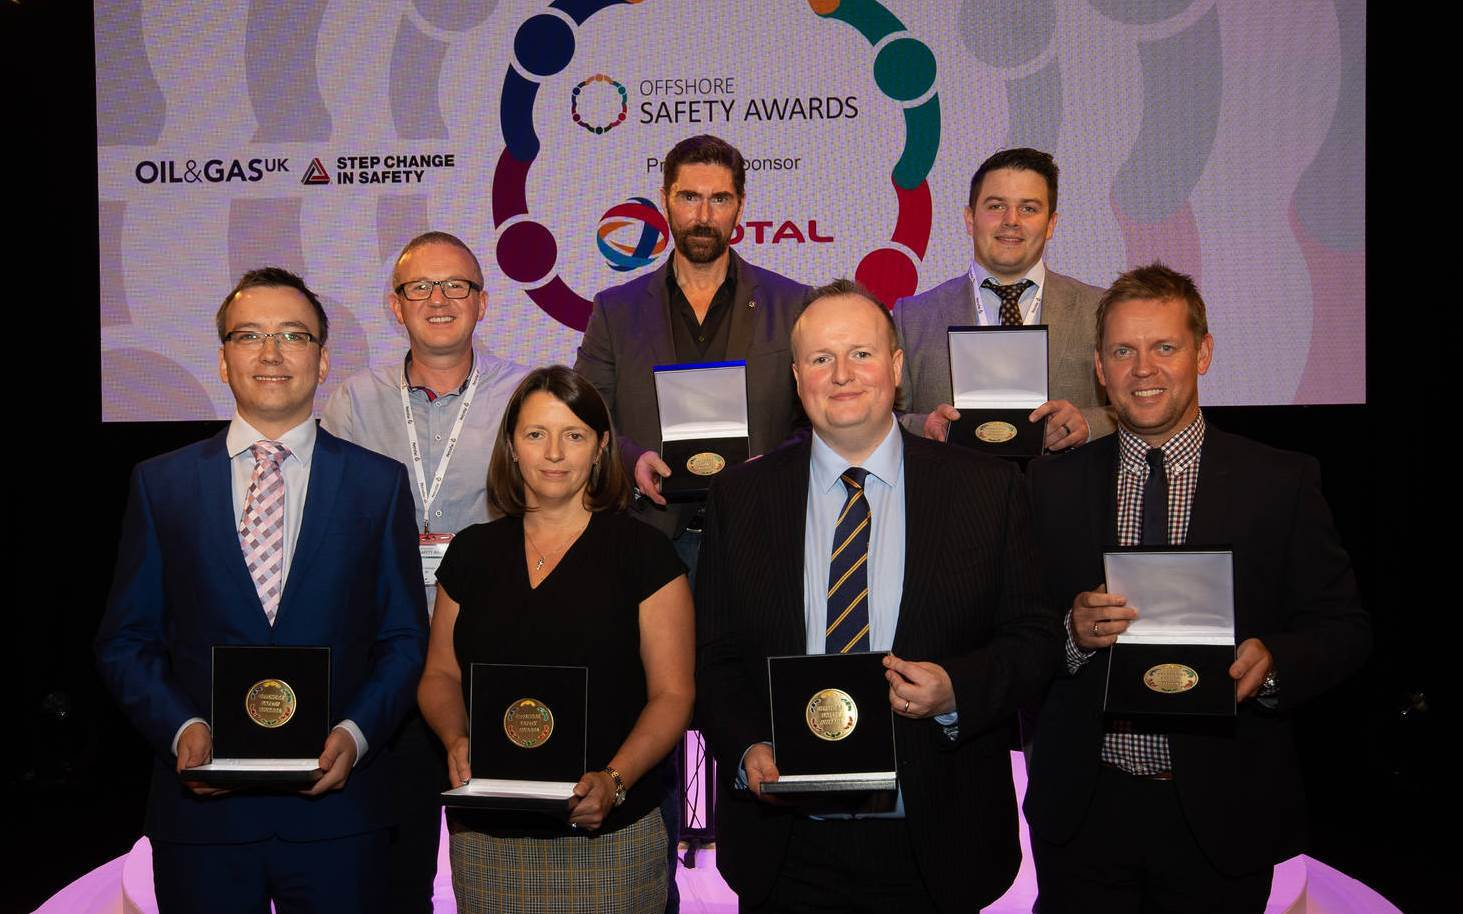 OSA Winners (L-R) Marcin Nazaruk, Alan Dickson, Fiona Fleming, Ian Garden, John Ritchie for ConocoPhillips, William Davidson, James Ellerton